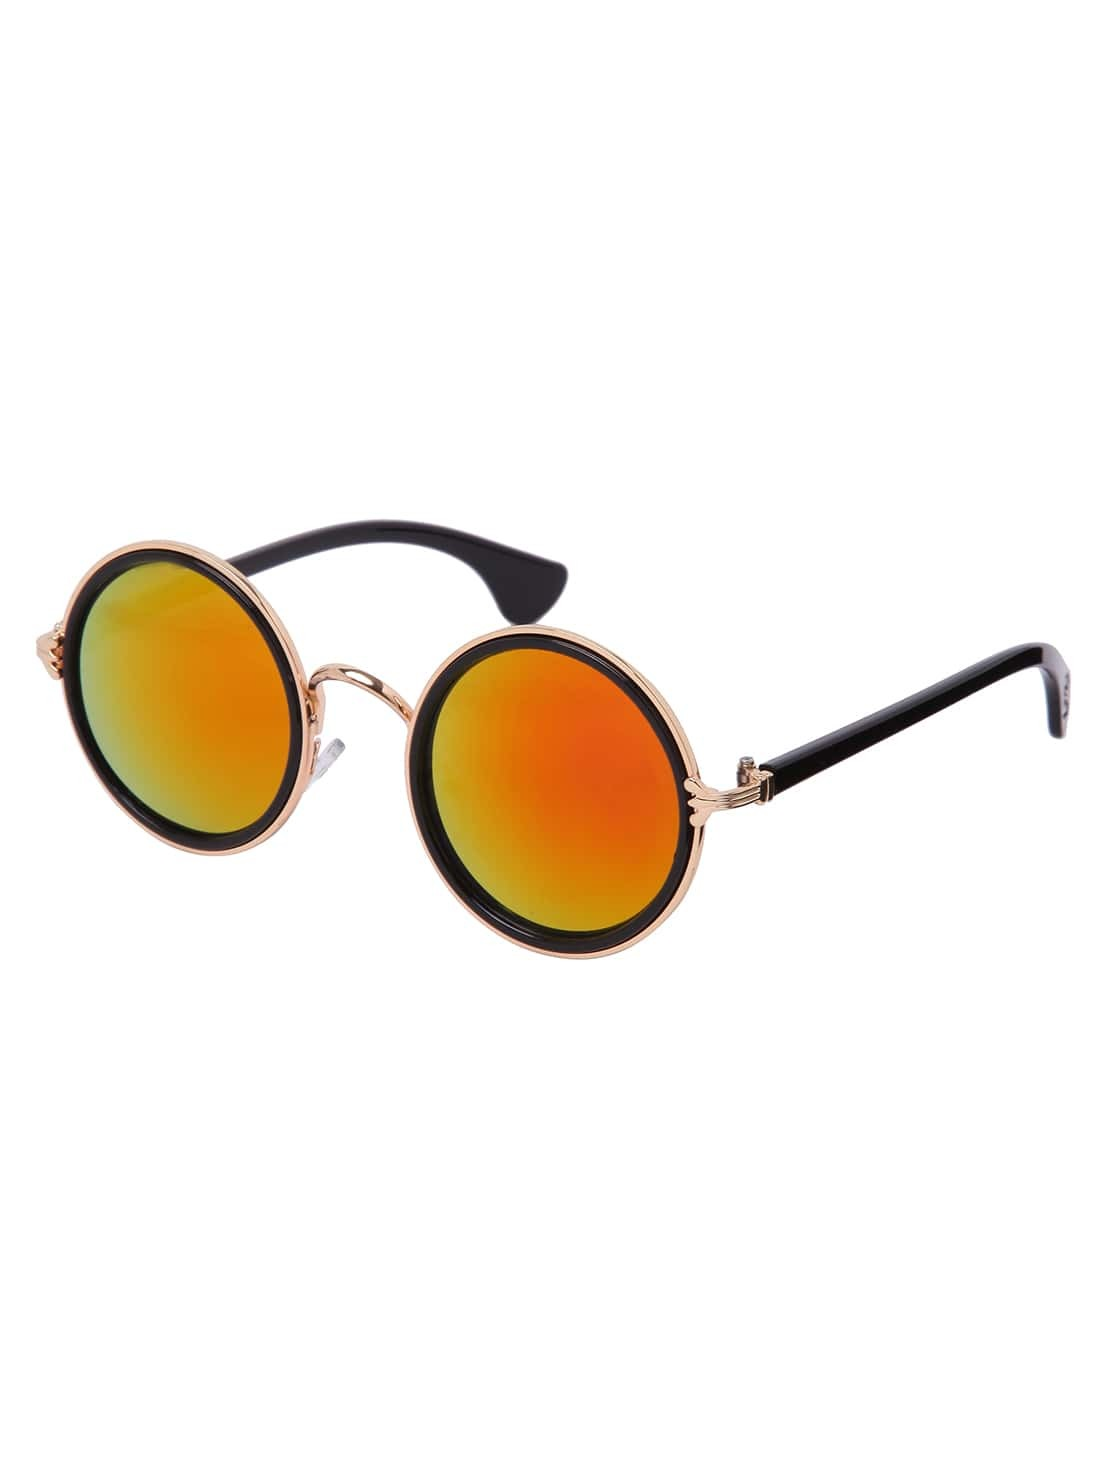 Red Lens Gold Frame Sunglasses : Gold Frame Round Red Lens Retro Style Sunglasses